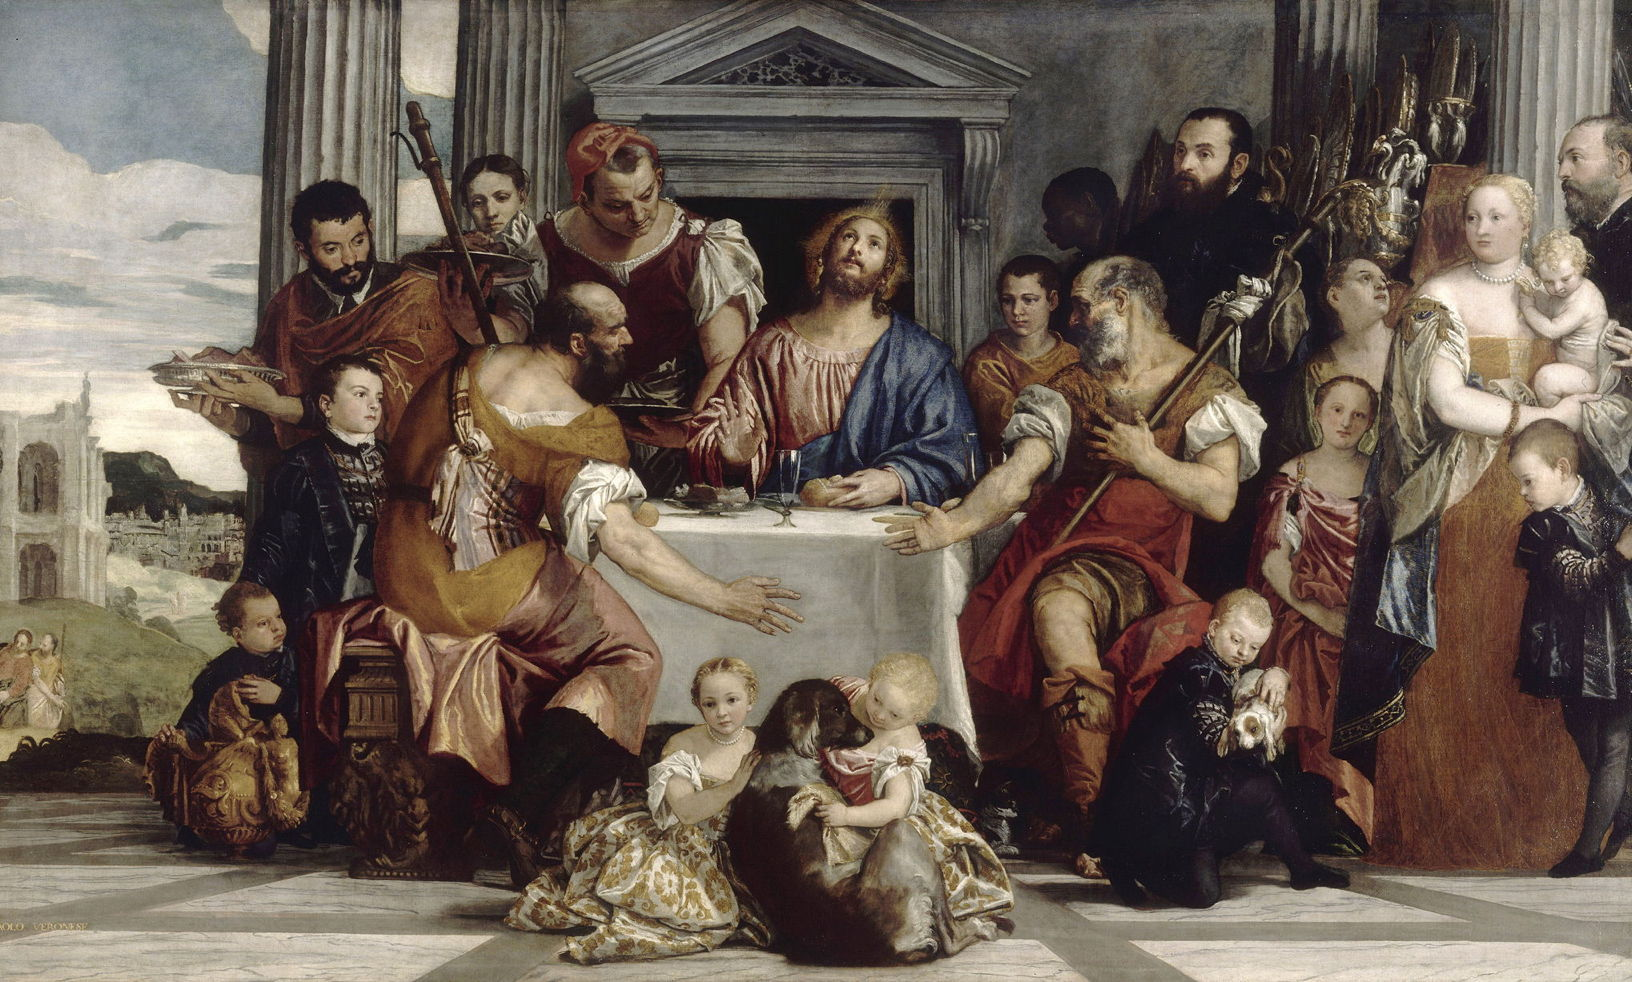 Paolo Veronese, The Supper at Emmaus 1559